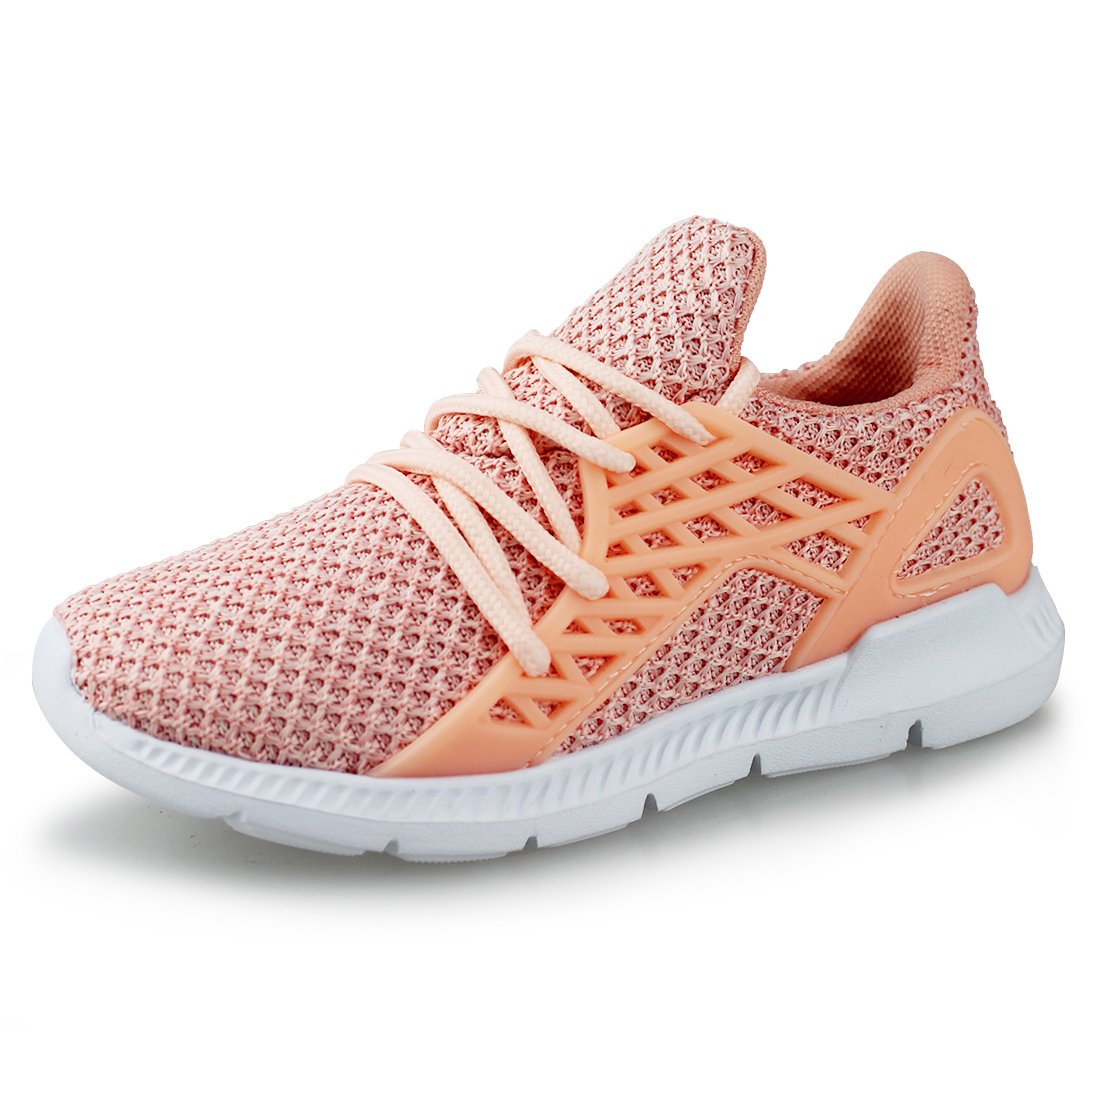 Hawkwell Youth Breathable Lightweight Running Shoes(Toddler/Little Kid),Pink Fly Knit,11 M US Little Kid